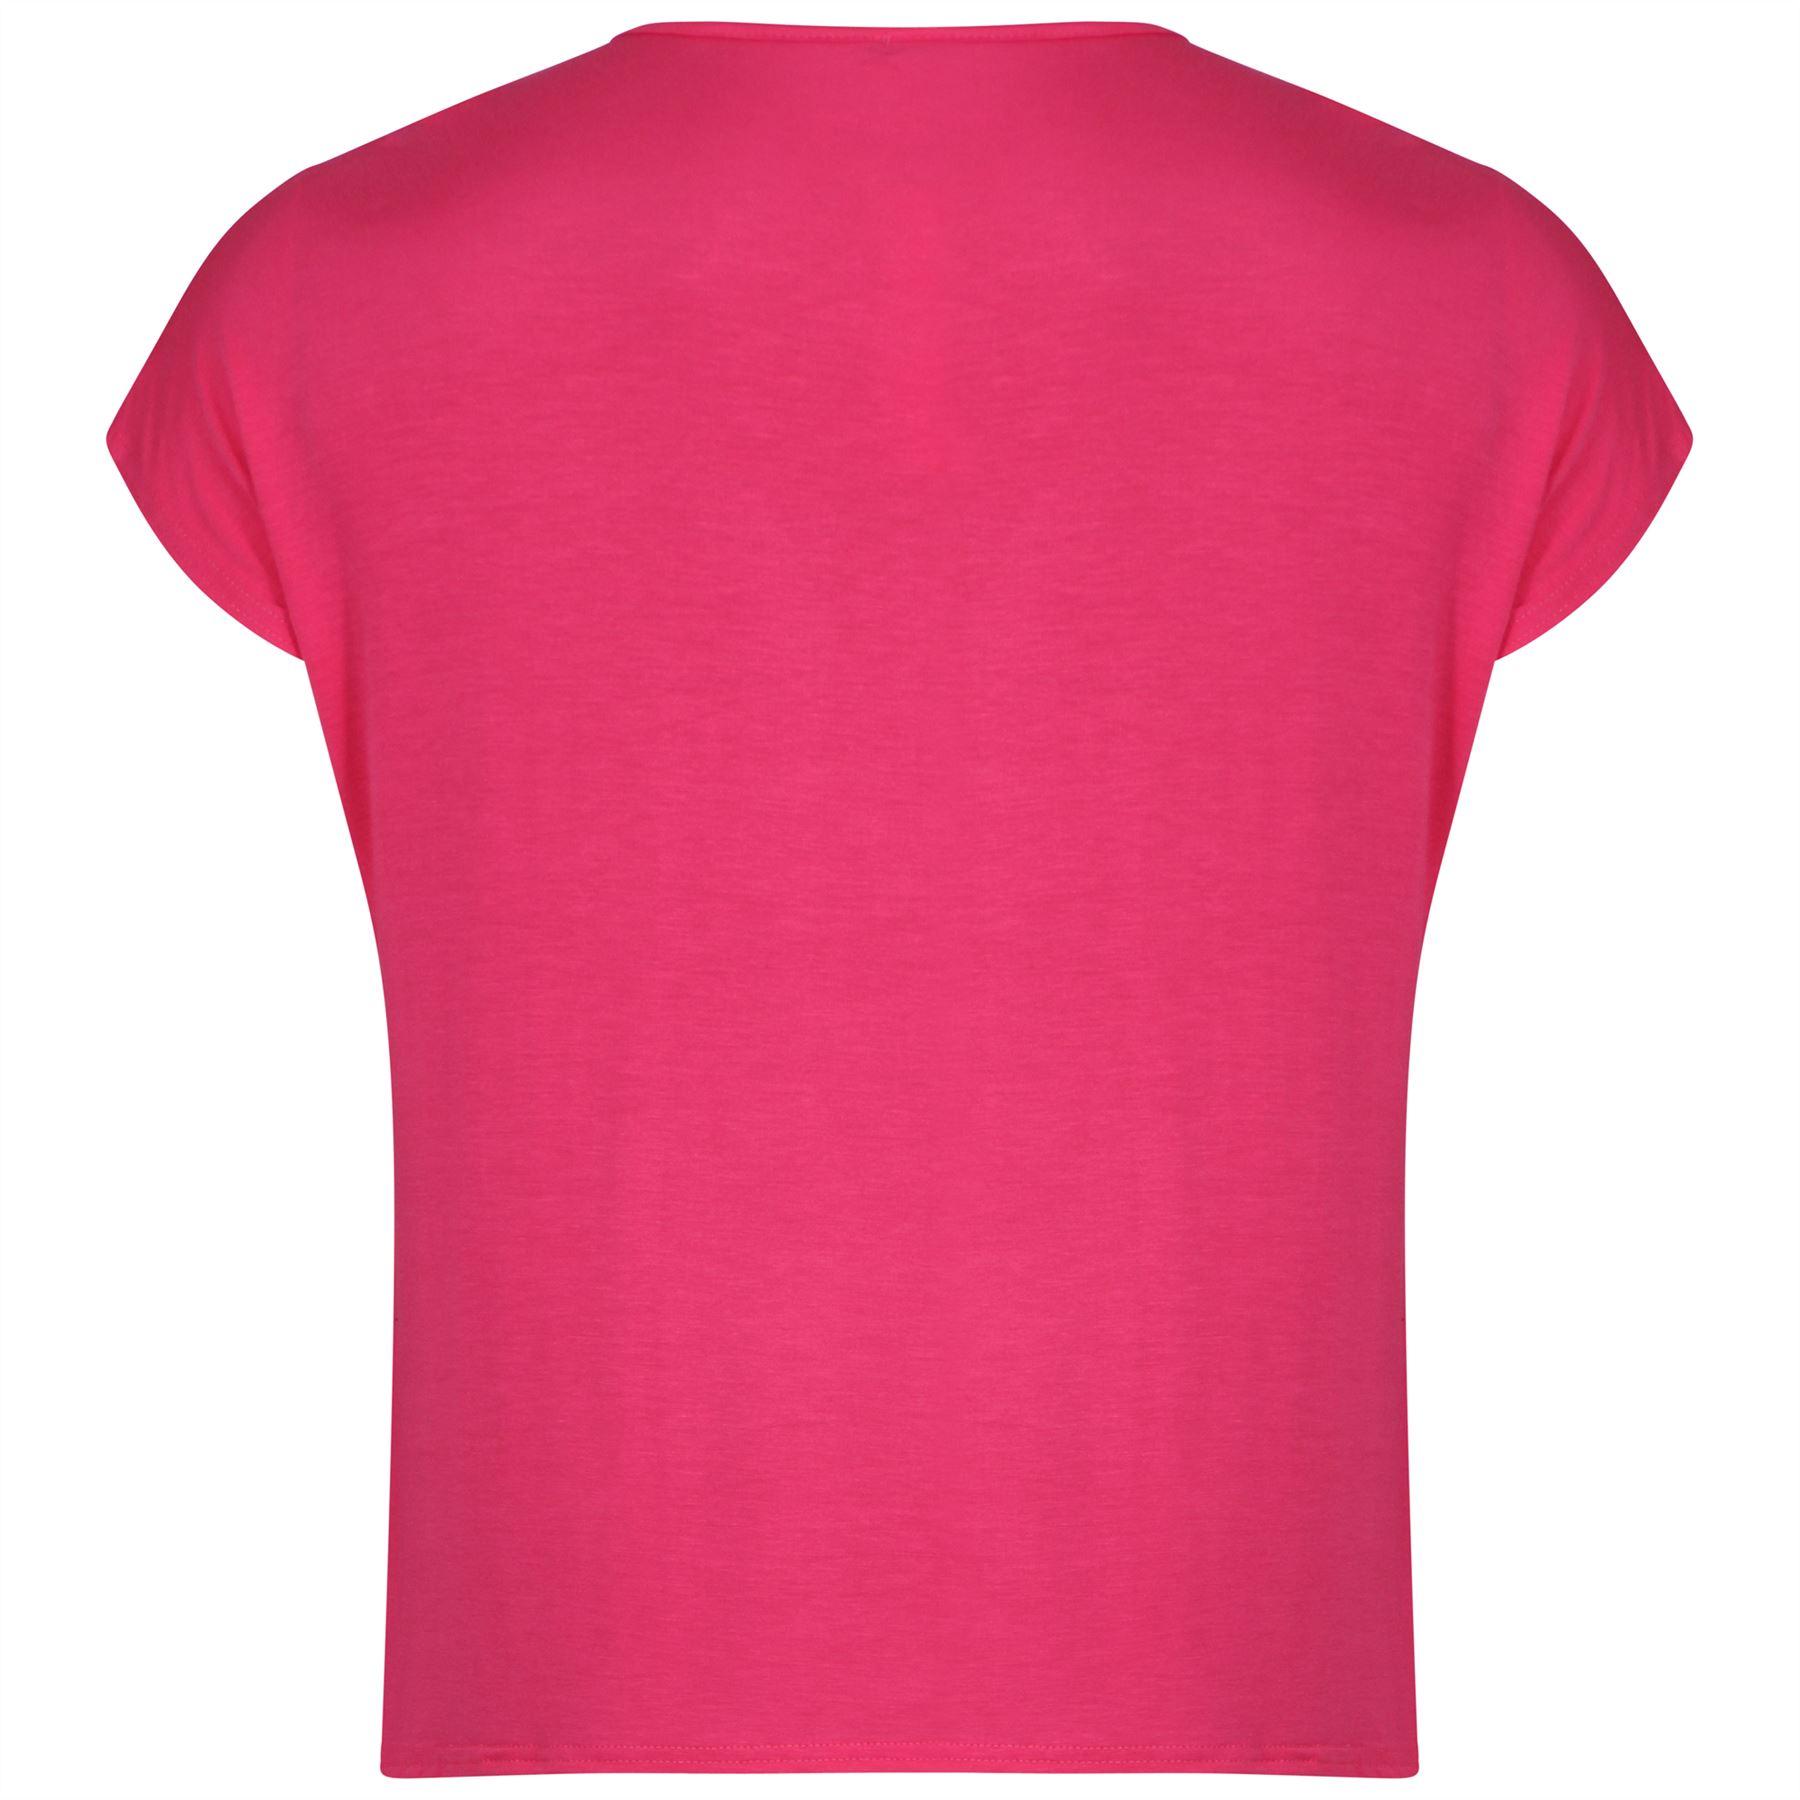 New Womens Plus Size Printed Stretch T Shirts Tee Tops Ebay